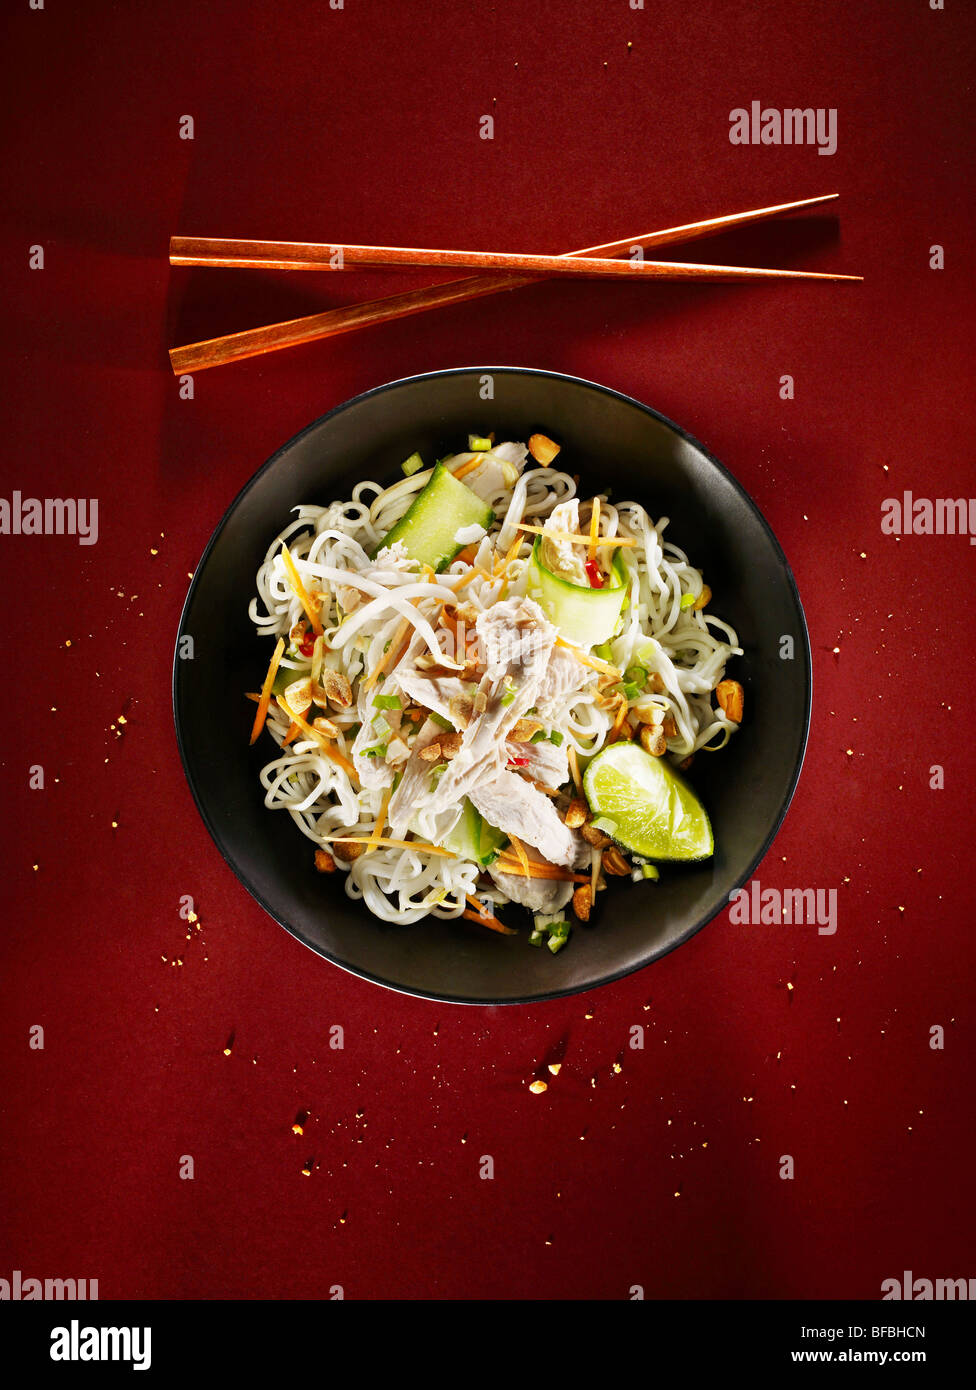 Spicy chicken noodles, an Asian style dish - Stock Image